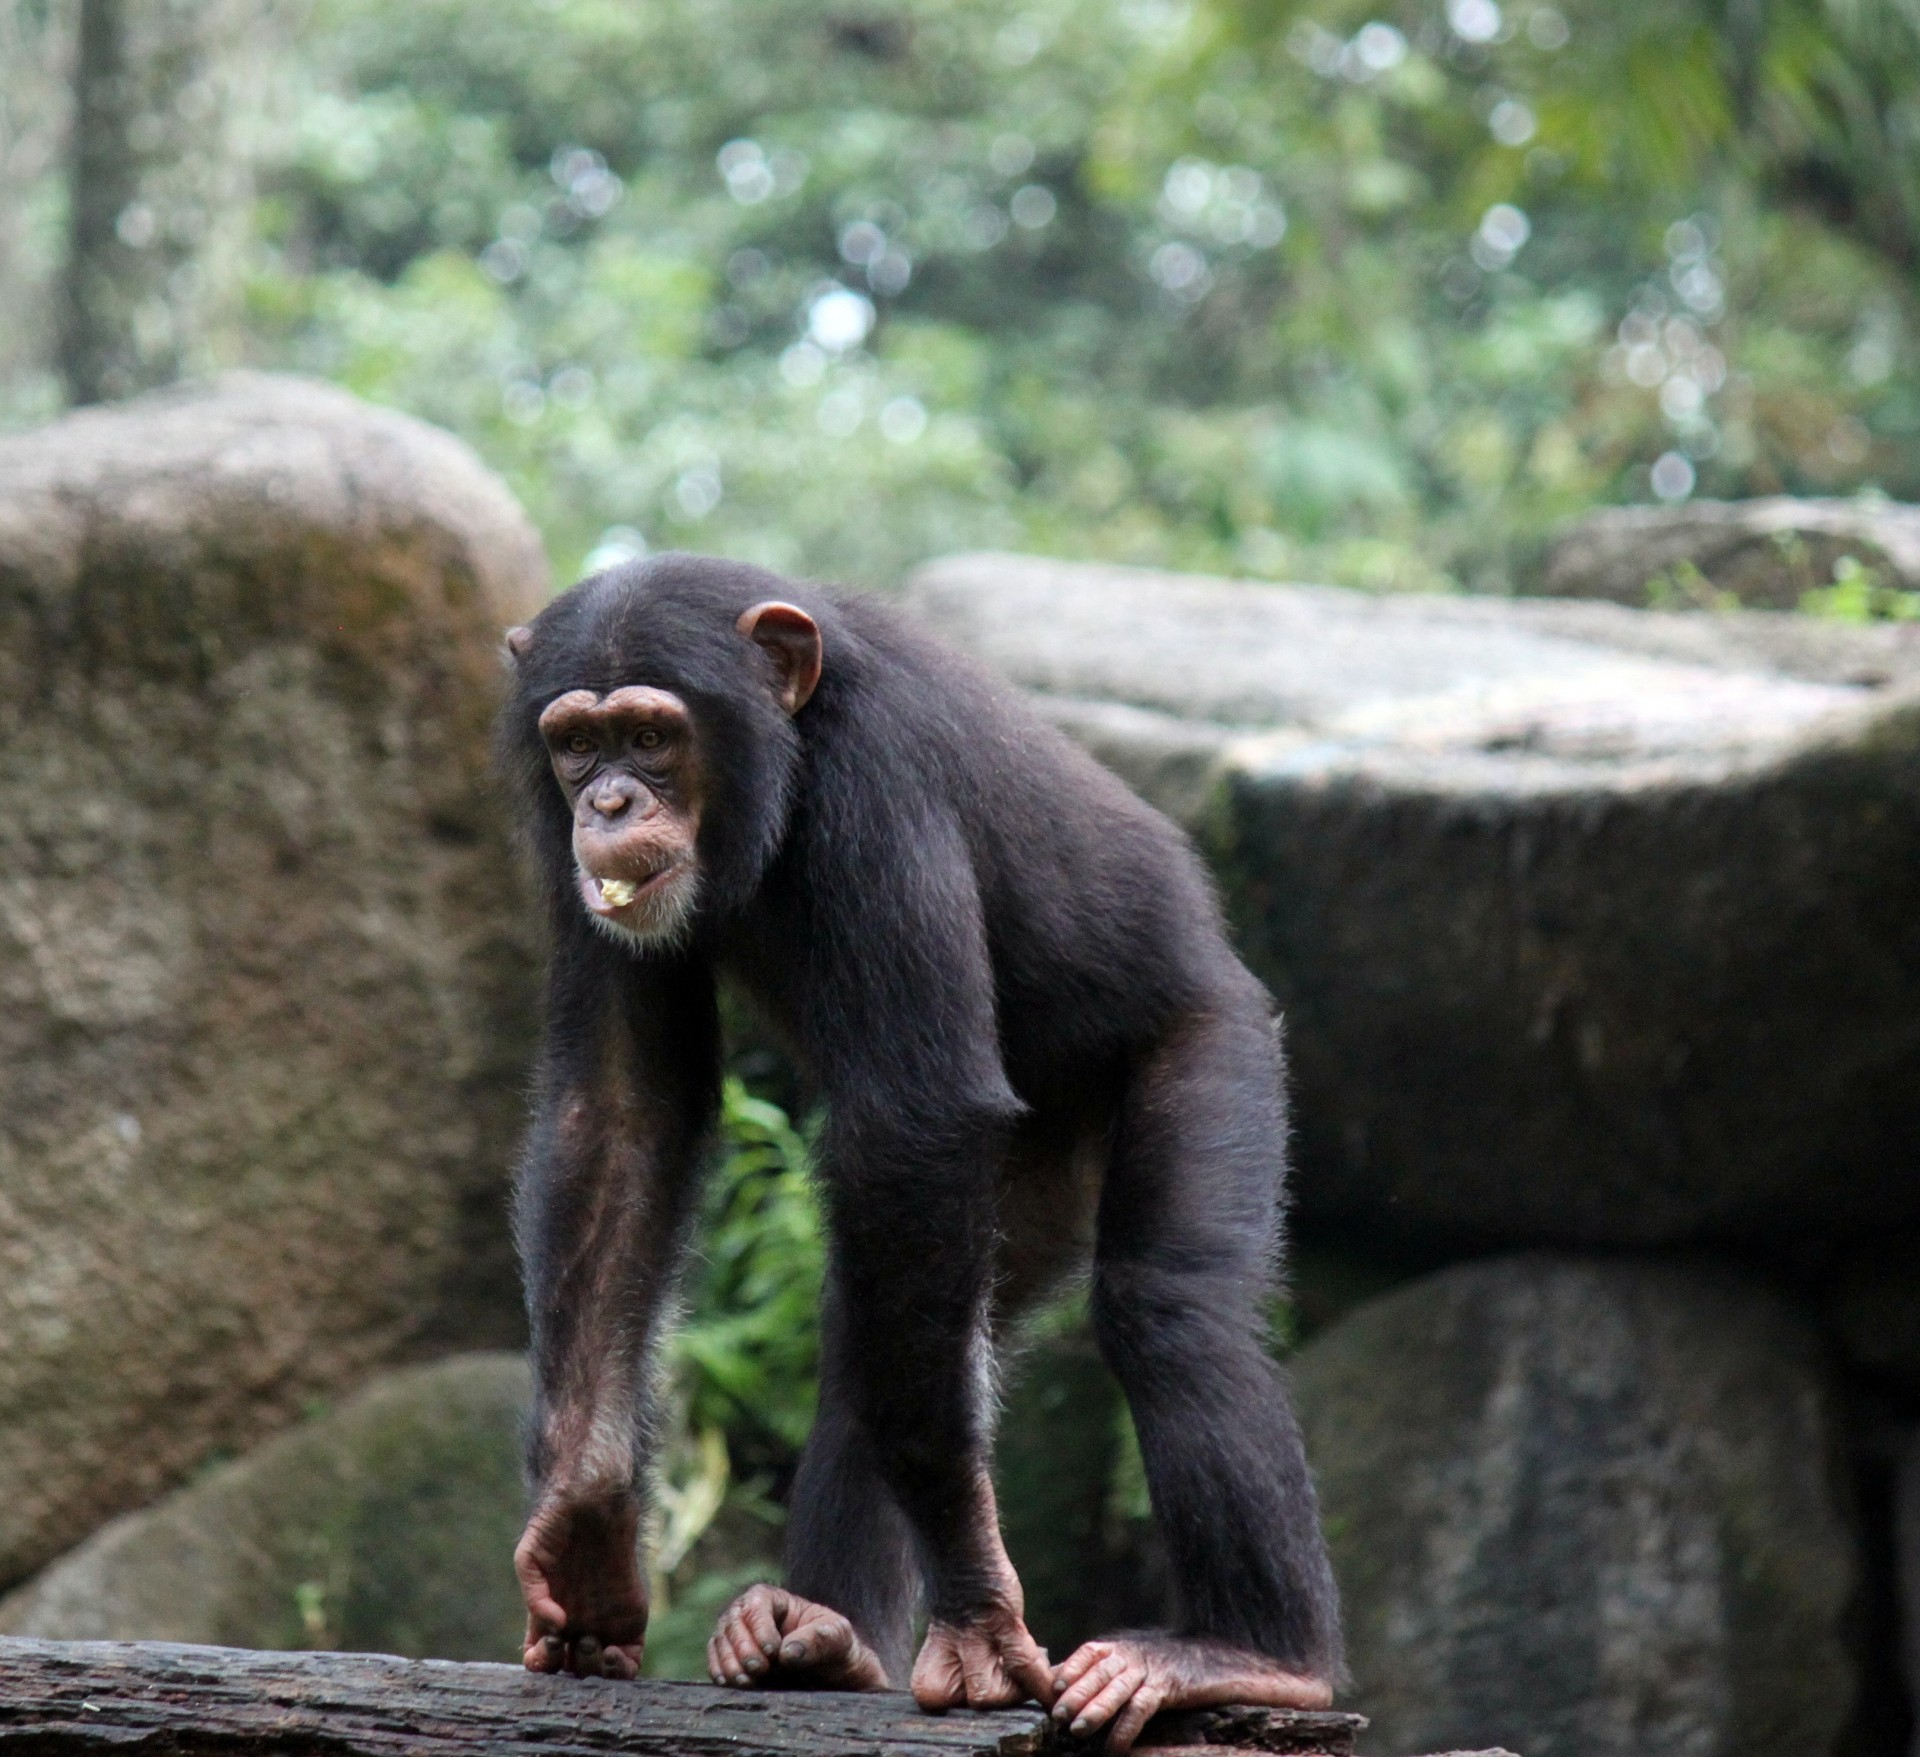 MN90: Studying Chimps with SIV